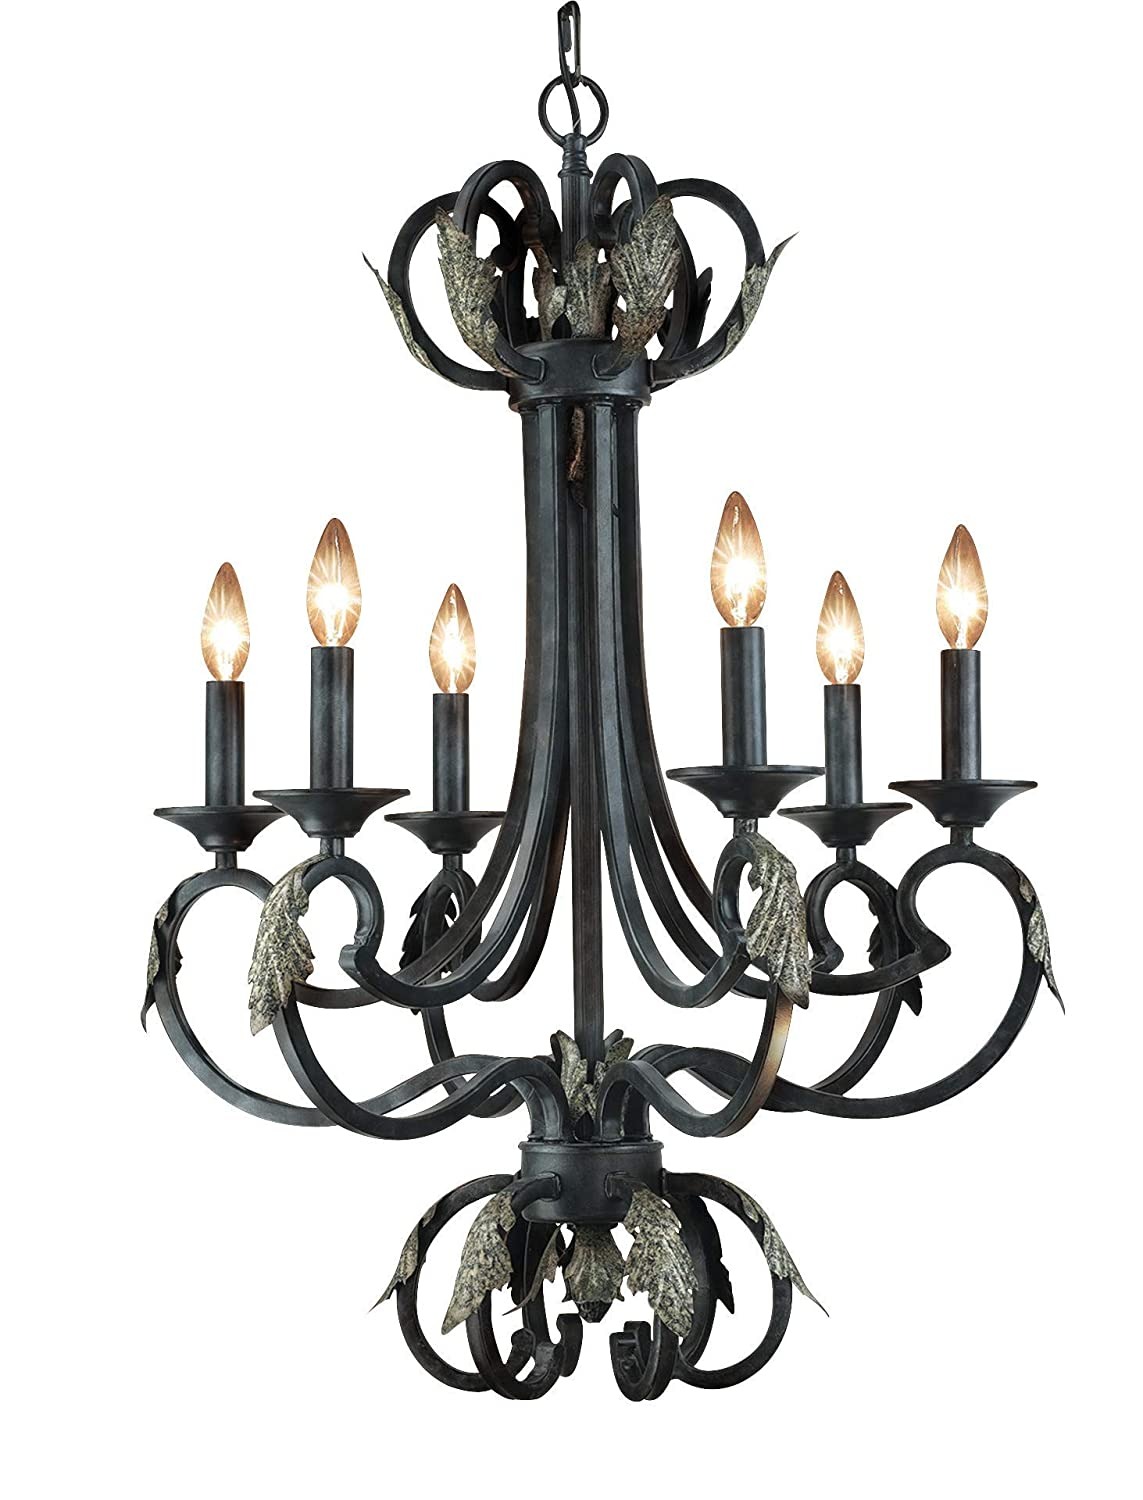 Easton 6 light chandelier amazon com